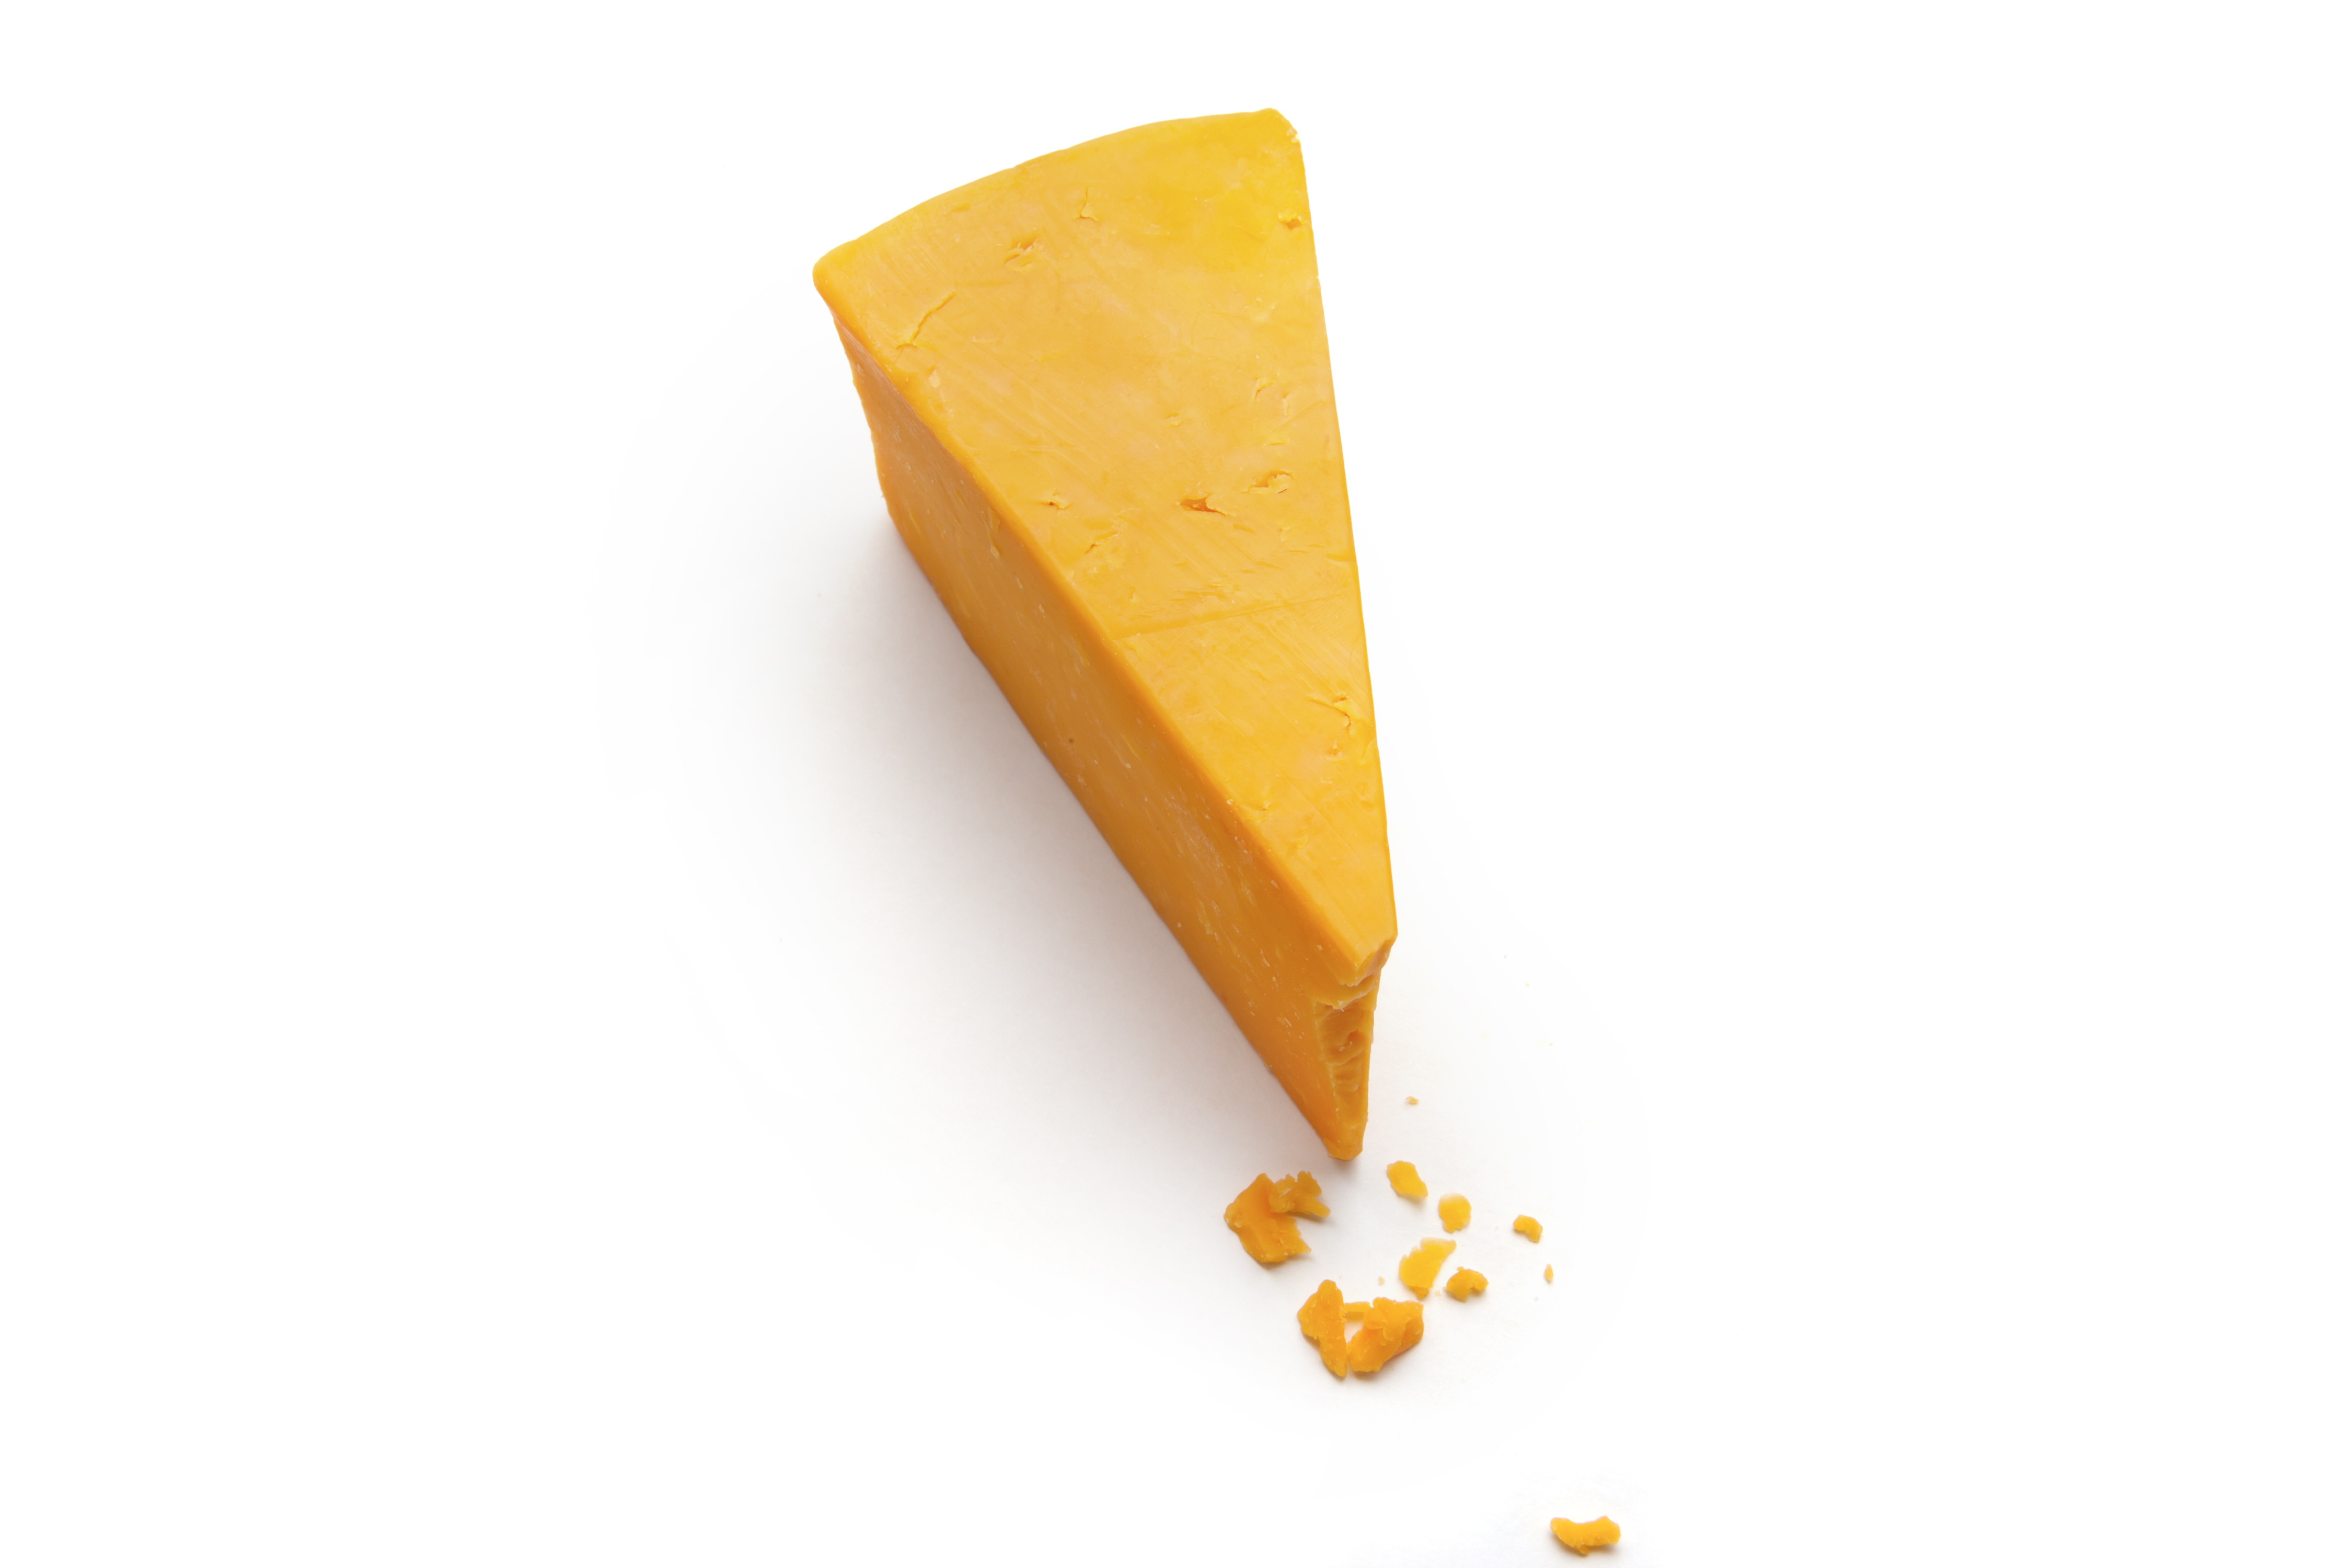 a wedge and some crumbs of cheddar cheese on a white studio background.